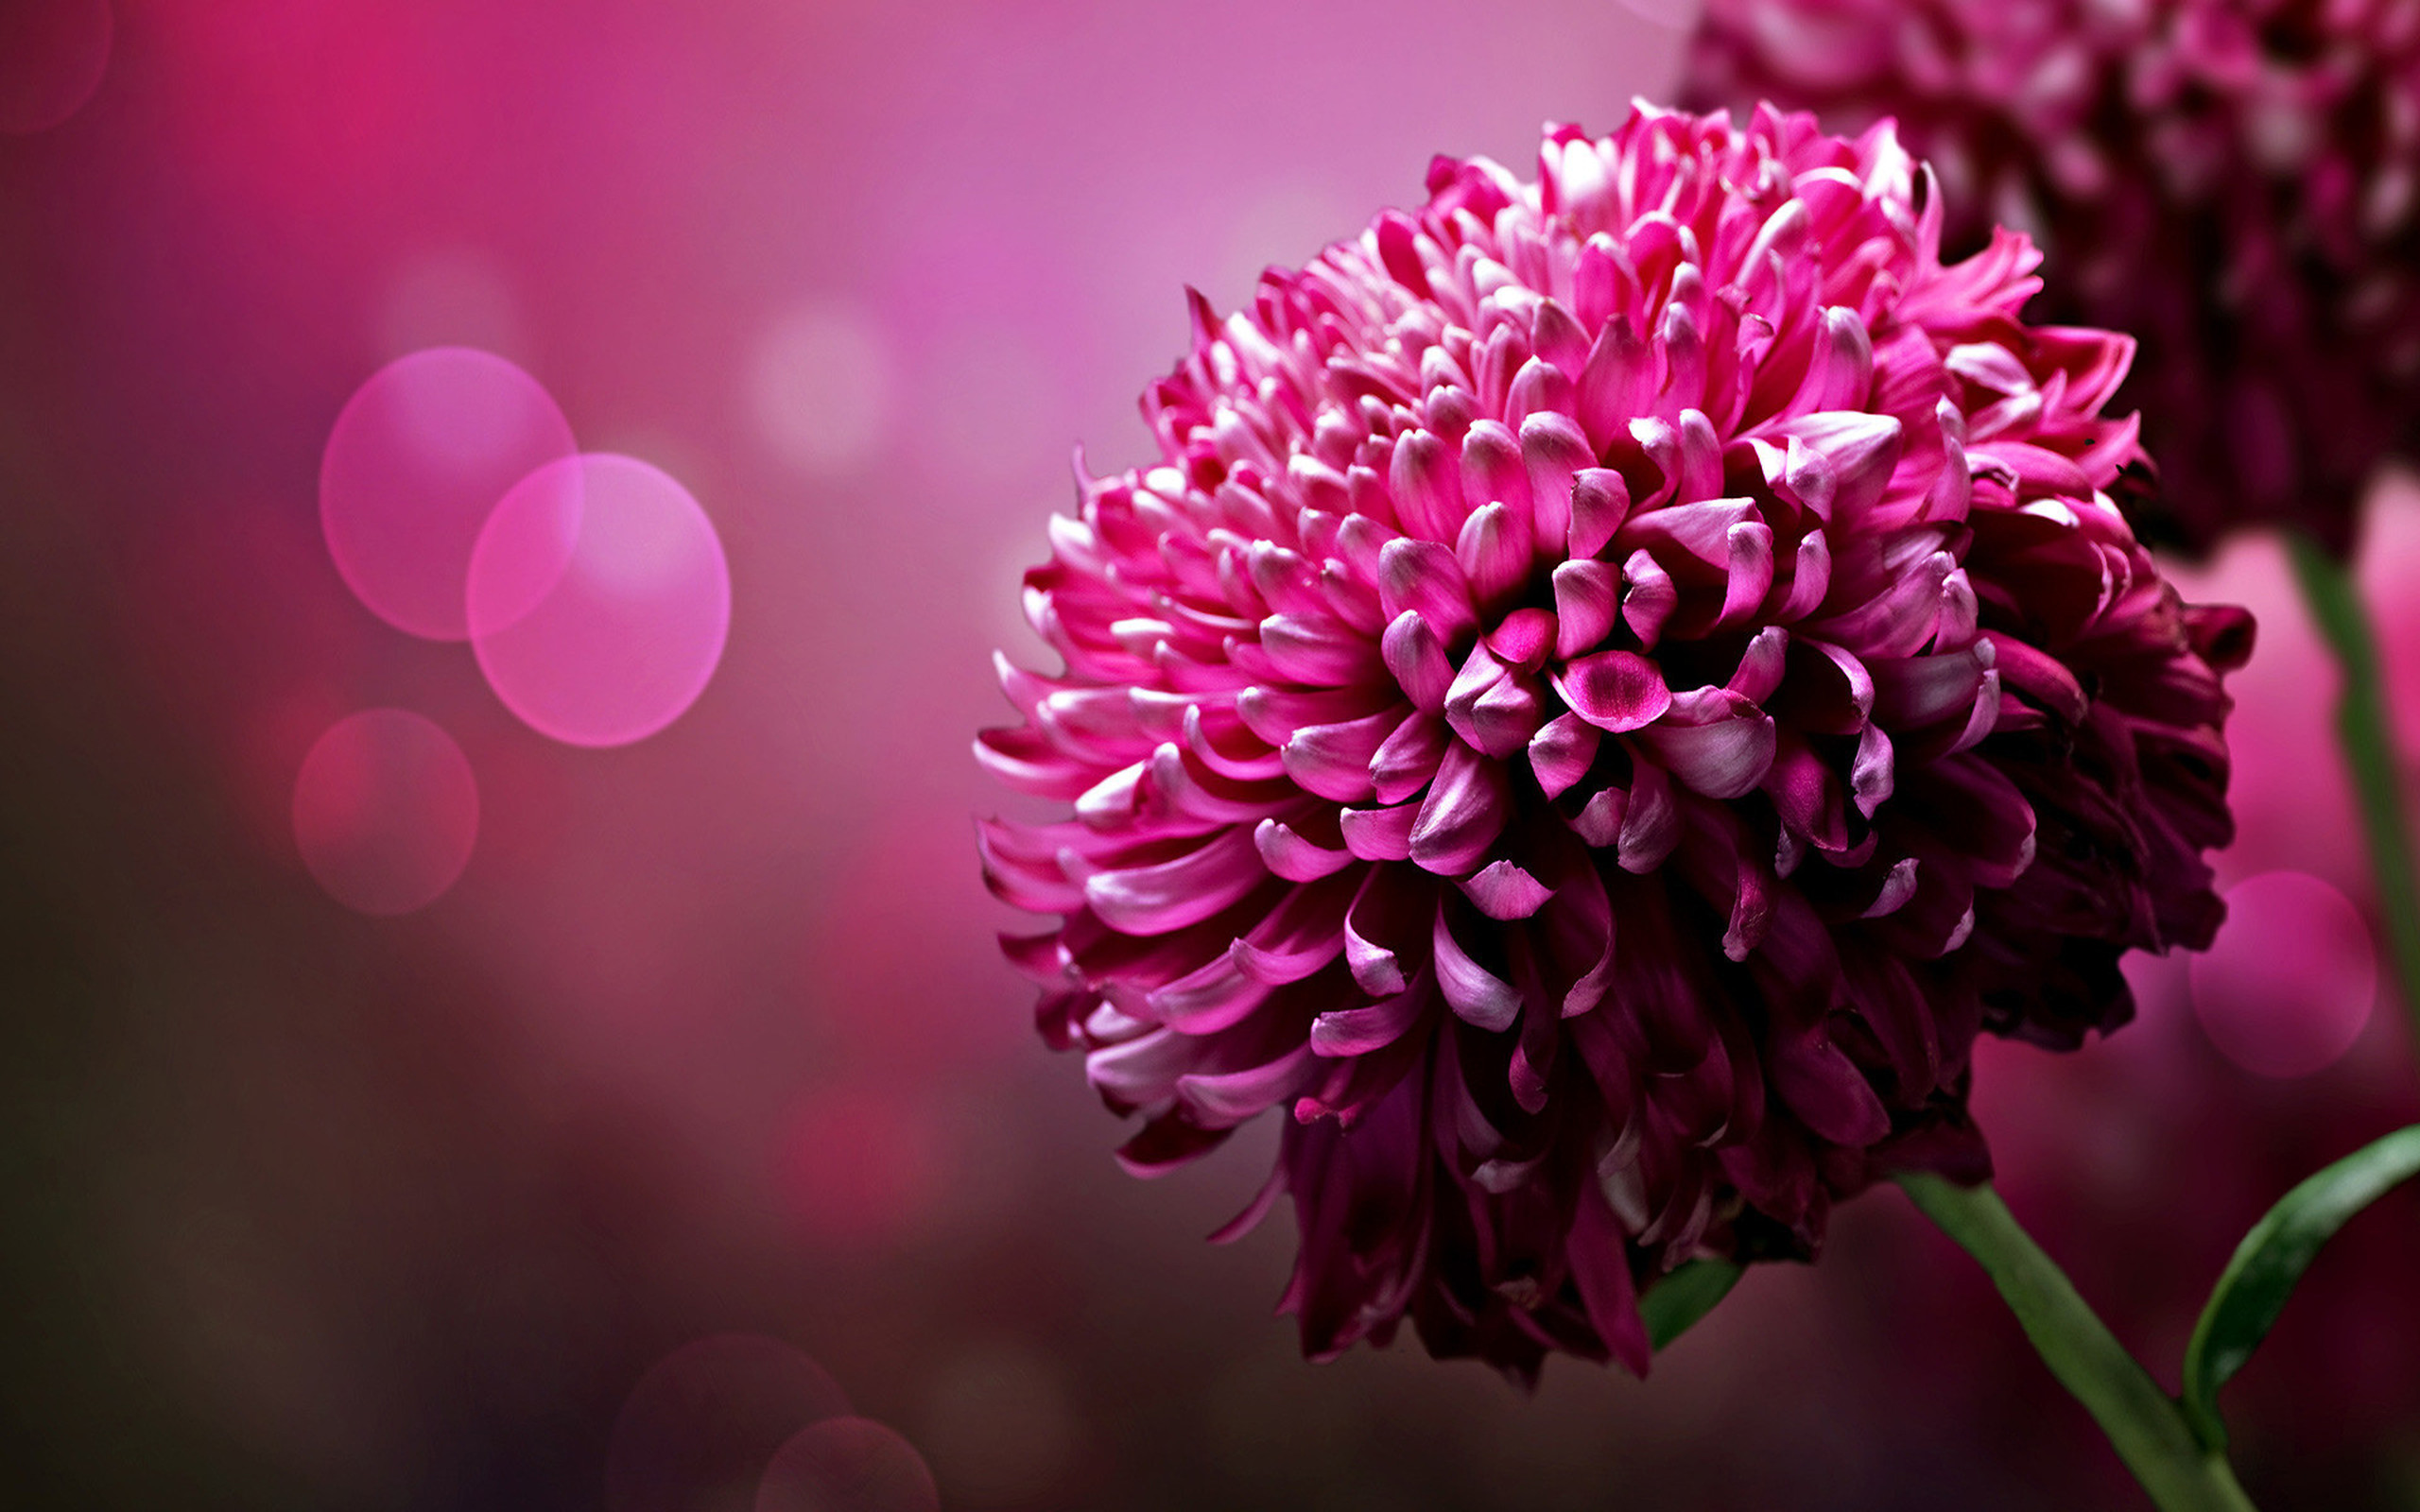 Worlds top 100 beautiful flowers images wallpaper photos free beautiful flowers wallpapers izmirmasajfo